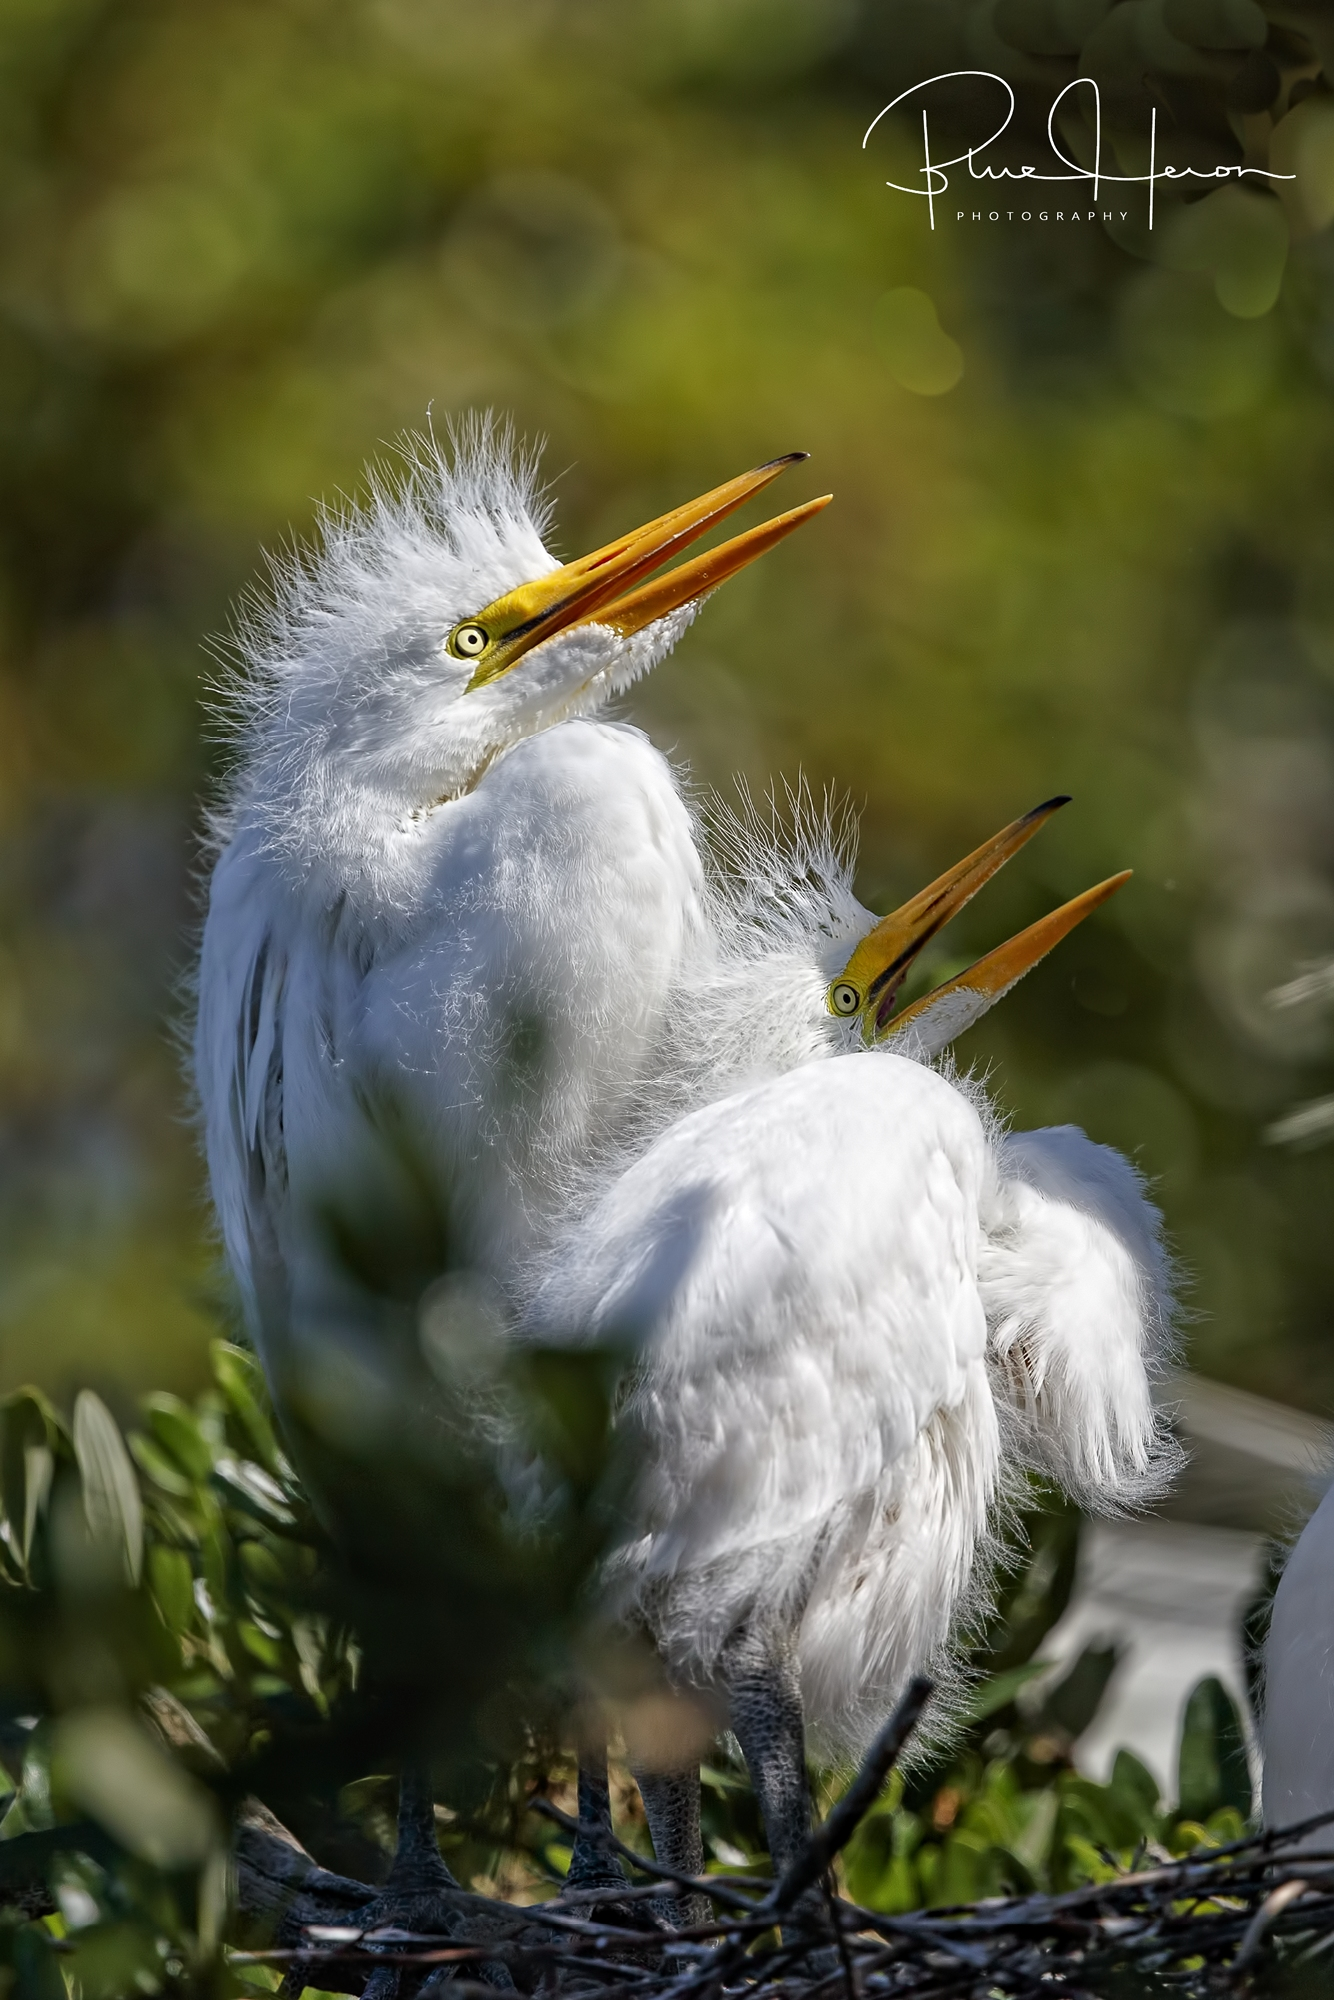 What's for breakfast? We are hungry! Great Egret nestlings wait for food.